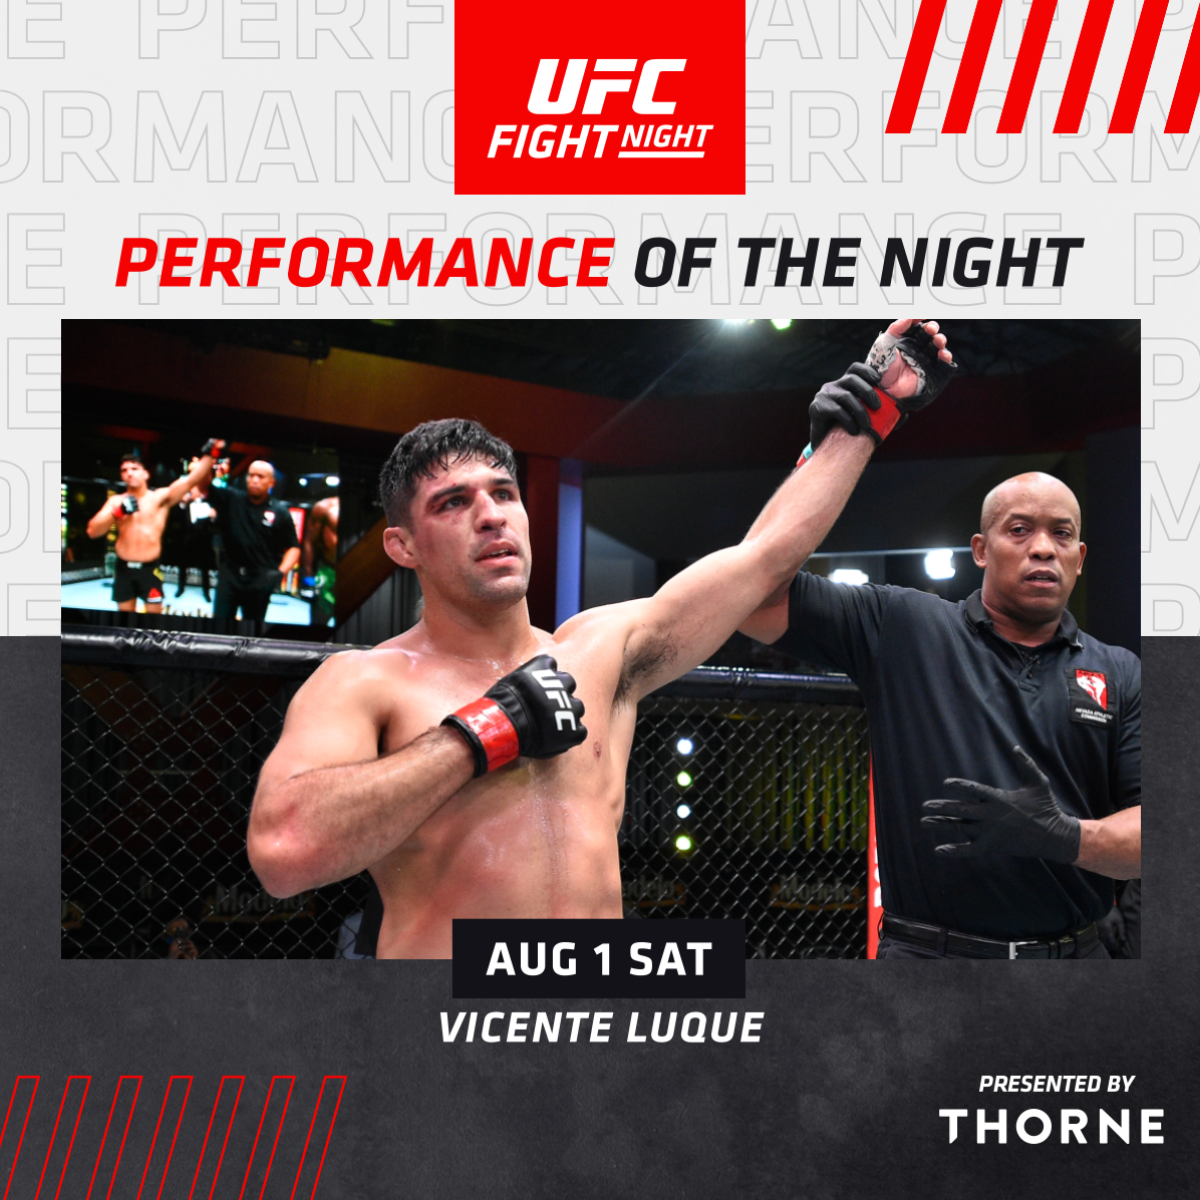 💰 PERFORMANCES OF THE NIGHT 💰   💵: Luque, Maia  [ B2YB @Thorne_Research ] https://t.co/TCR6dzTu4U